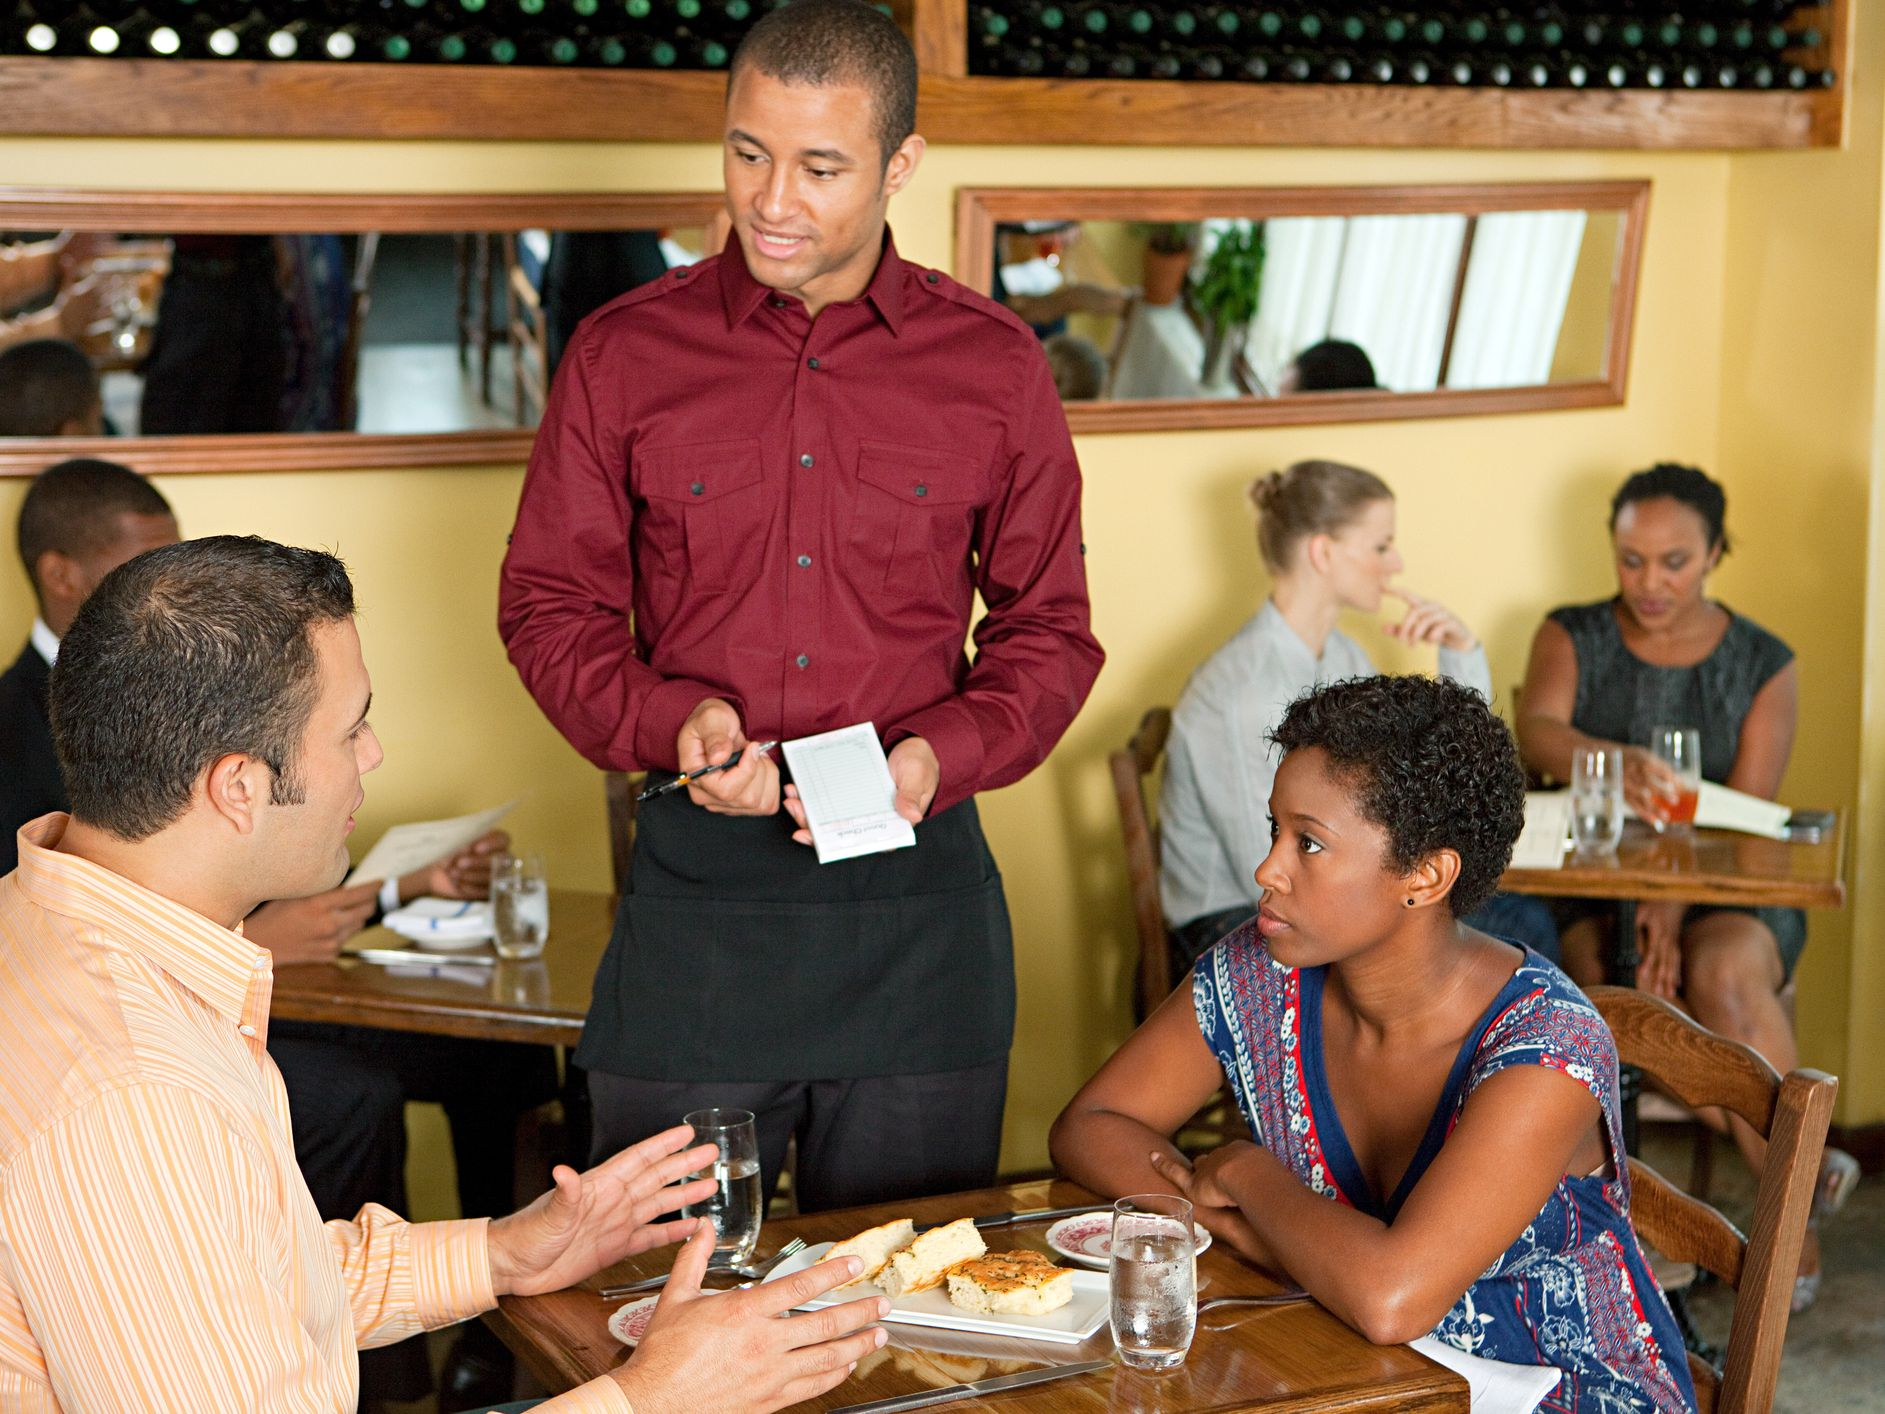 Ways To Handle Customer Complaints In A Restaurant